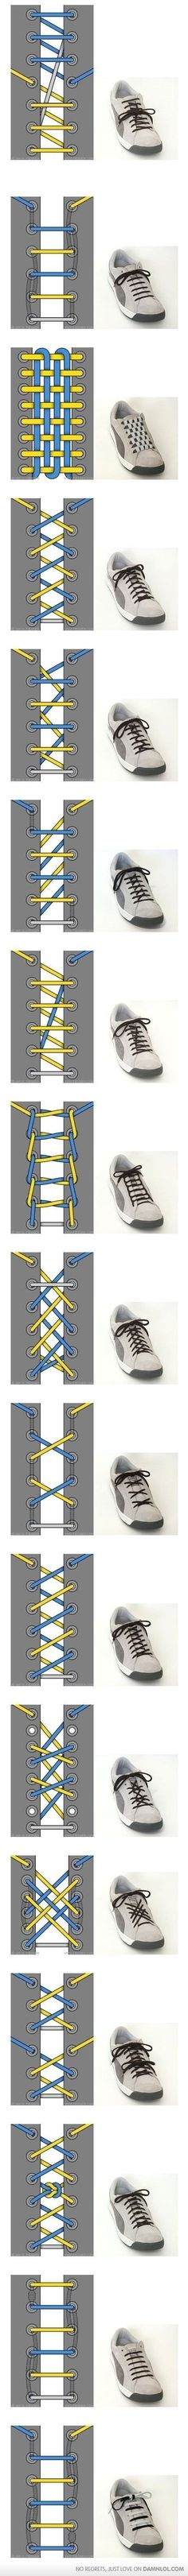 Shoe lace techinque